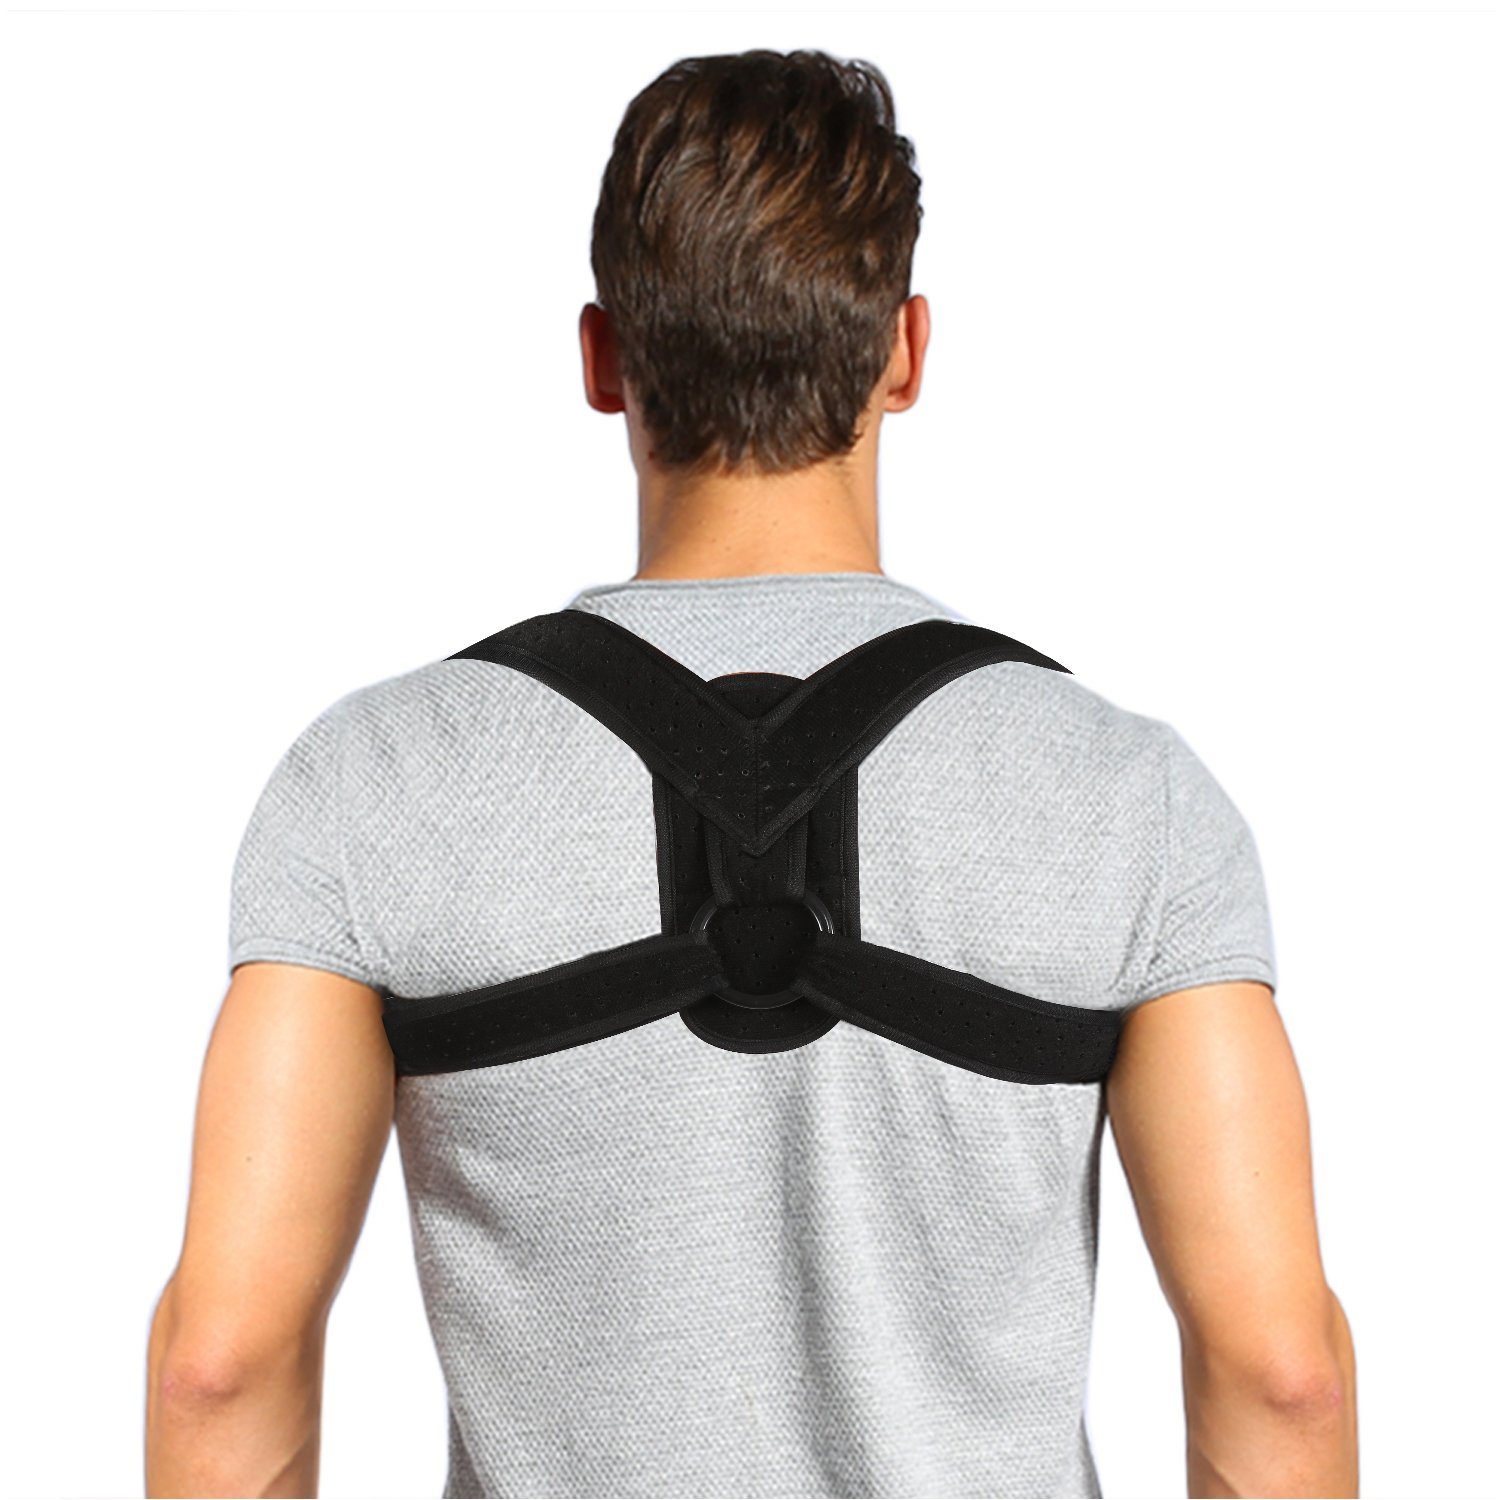 Posture Corrector Brace and Clavicle Support Straightener for Upper Back Shoulder Forward Head Neck Aid, Improve and Fix Poor Posture for Women Men (L(35''-48'' Chest)) by Yosoo Health Gear